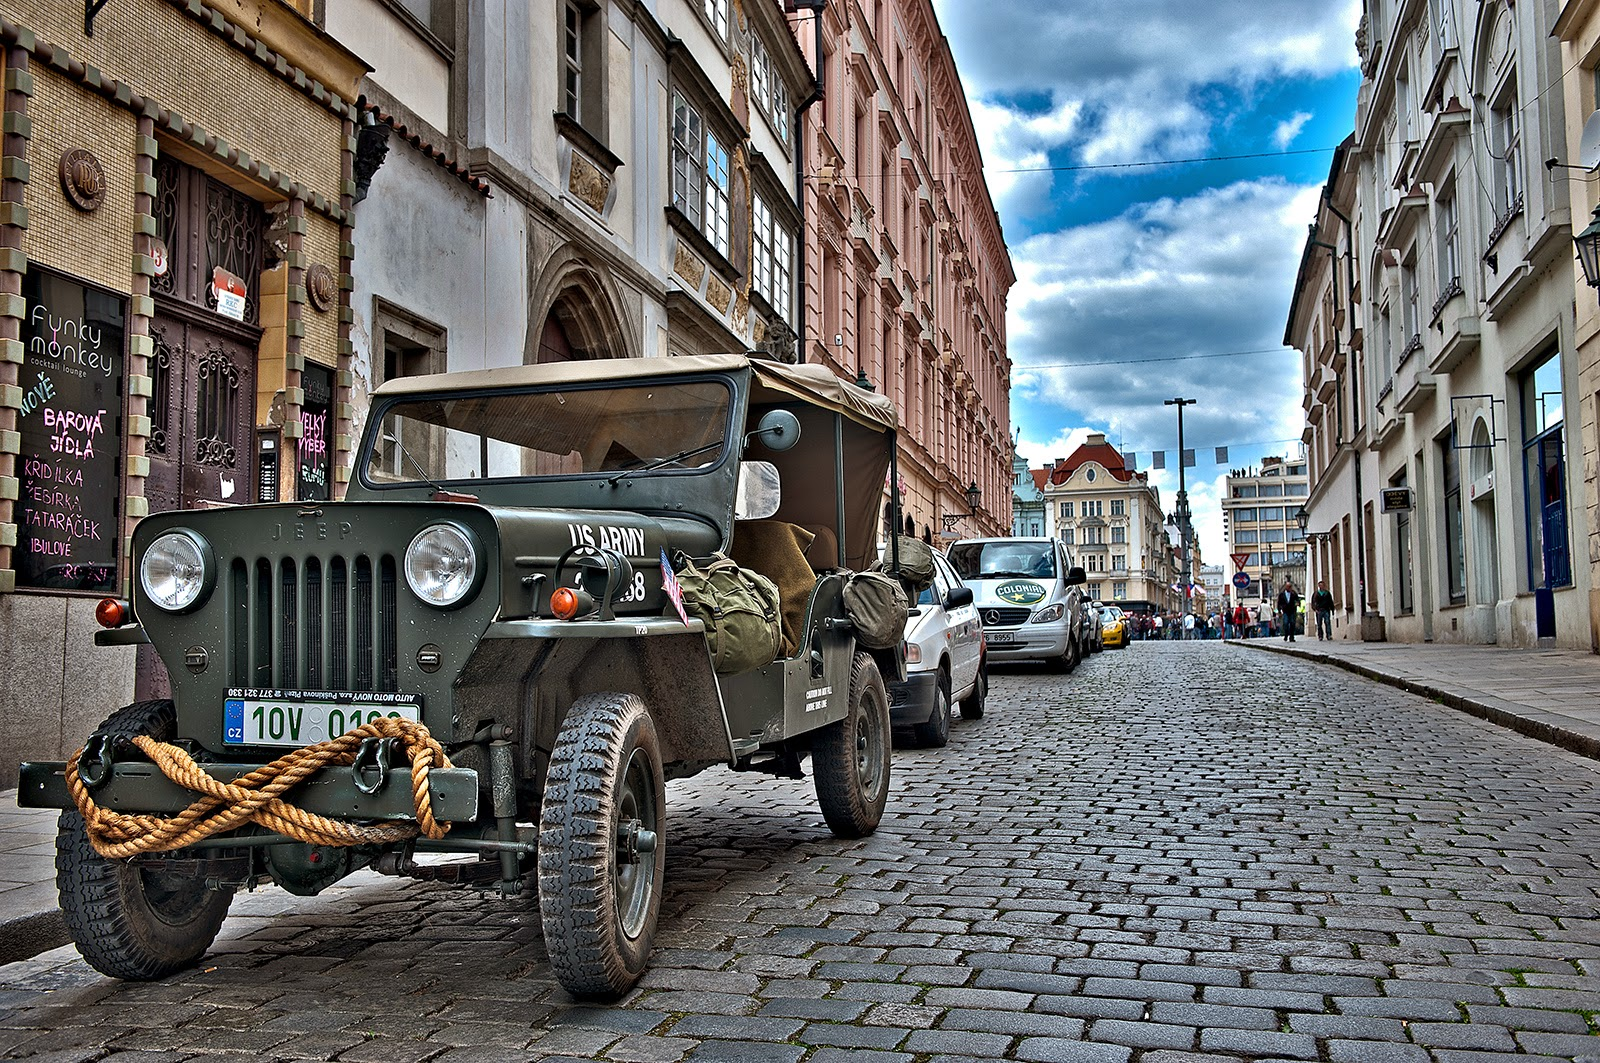 WWII, Plzen, World War II, U.S. WWII soldiers, 16 Armored Division, Liberation of Plzen, Czech Republic, Czechoslovakia, Army Jeep